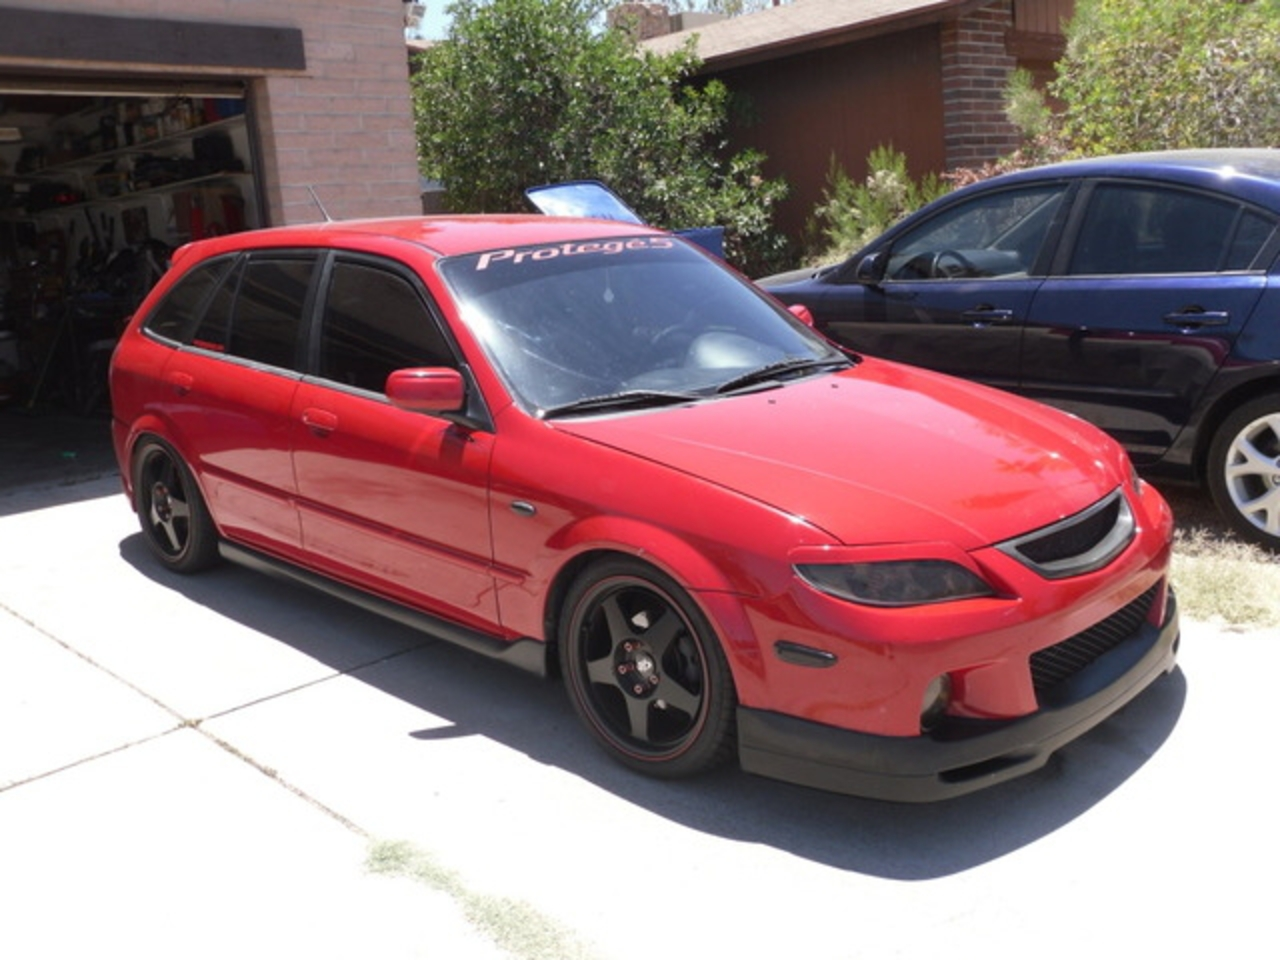 My old 2003.5 Mazda Protege5 turbo that was highly modified.